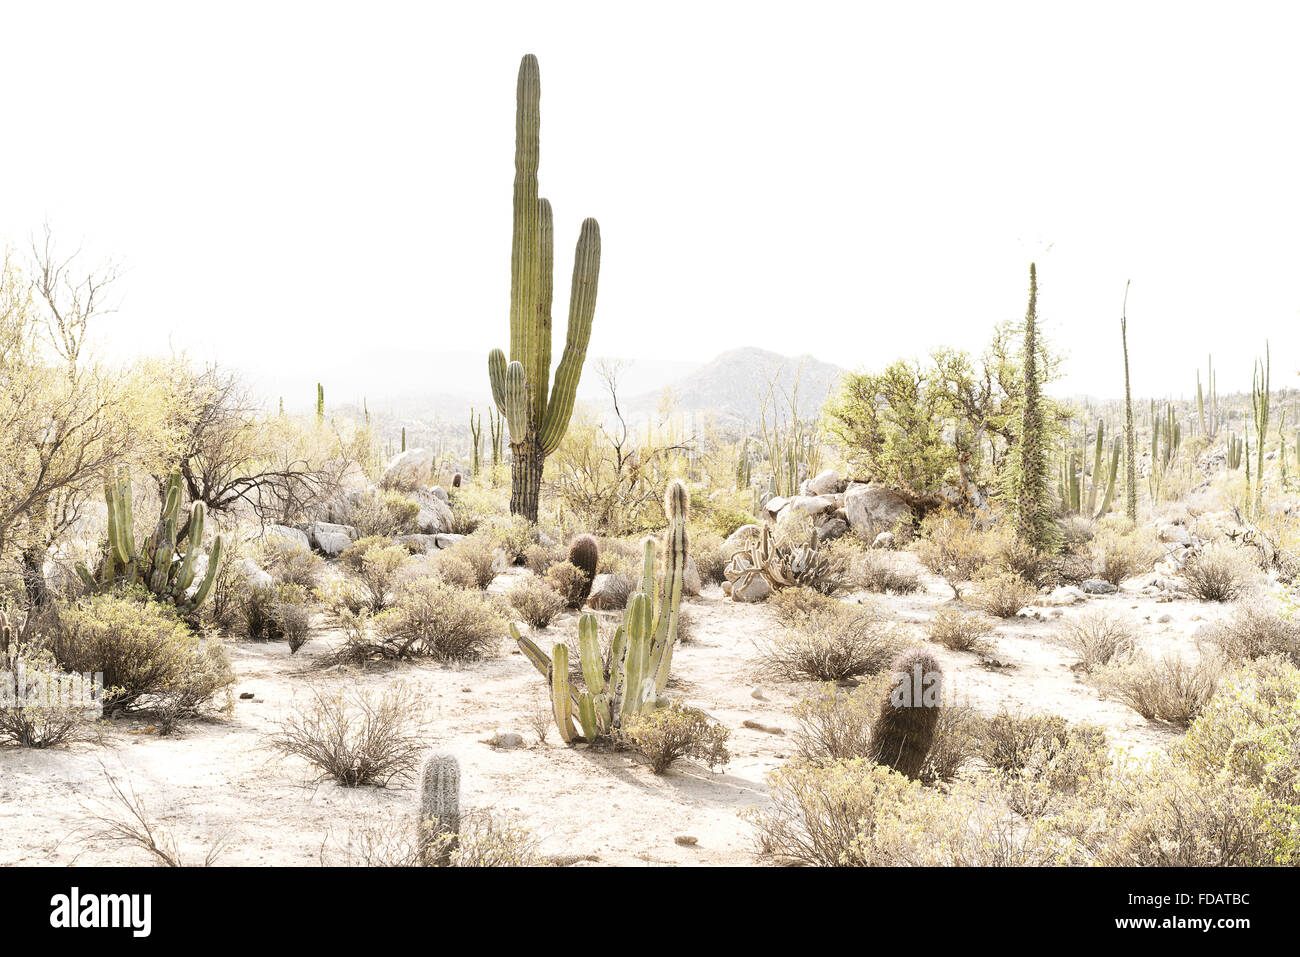 Desert scene in Baja California, Mexico - Stock Image